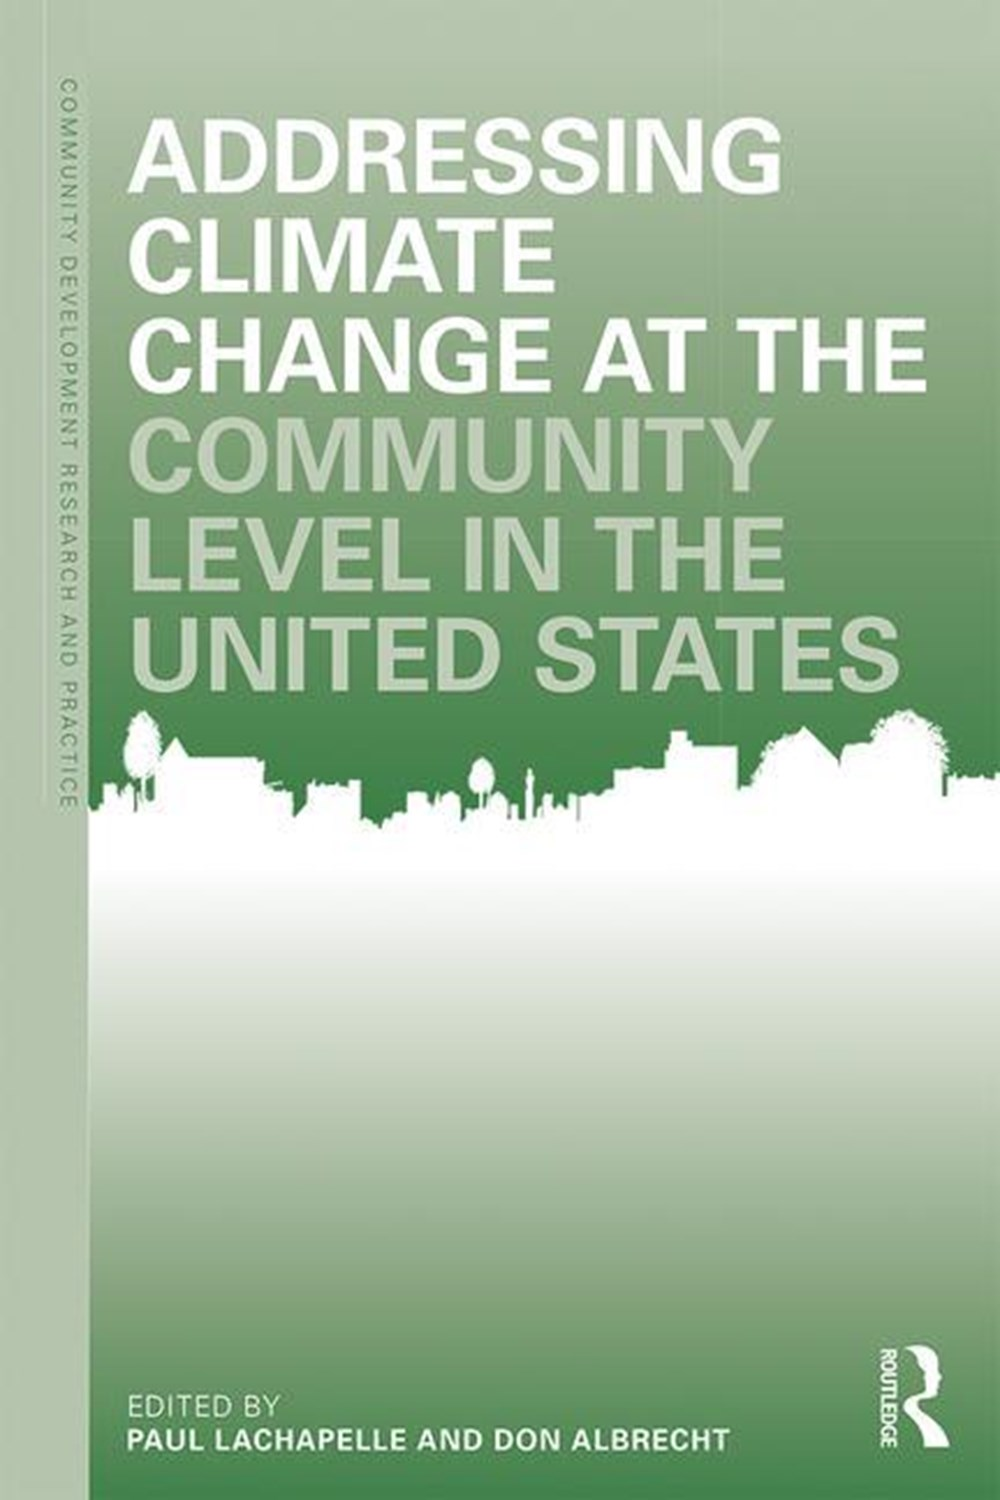 Addressing Climate Change at the Community Level in the United States